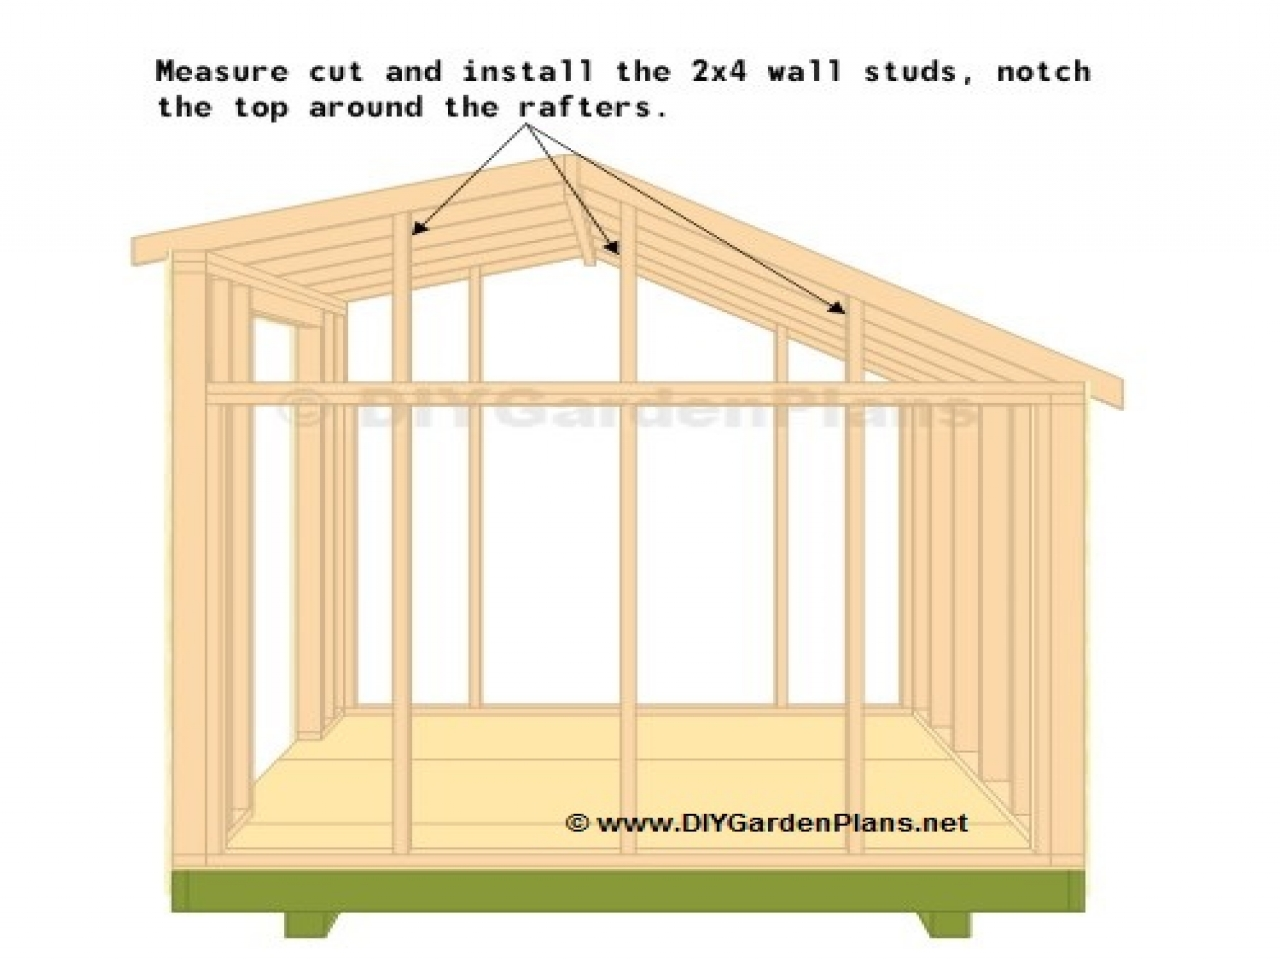 Saltbox shed truss plans storage shed plans 10x12 saltbox for New england shed plans